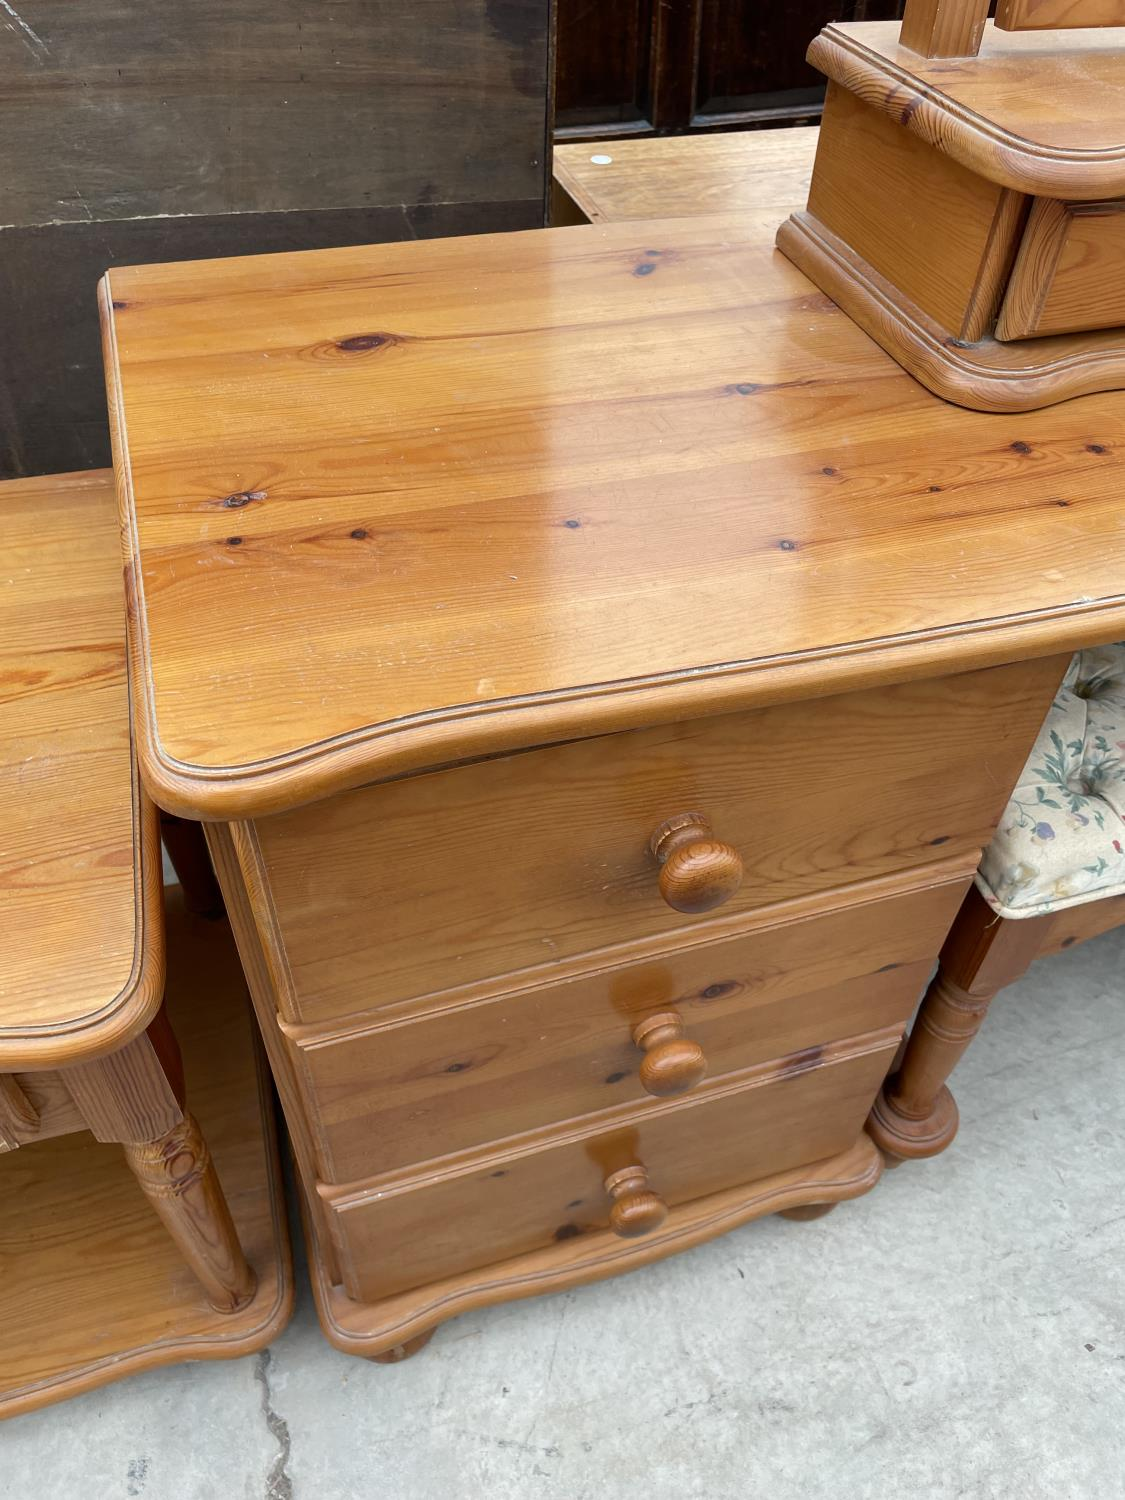 A MODERN PINE DRESSING TABLE WITH MIRROR, STOOL AND TWO BEDSIDE TABLES - Image 4 of 7